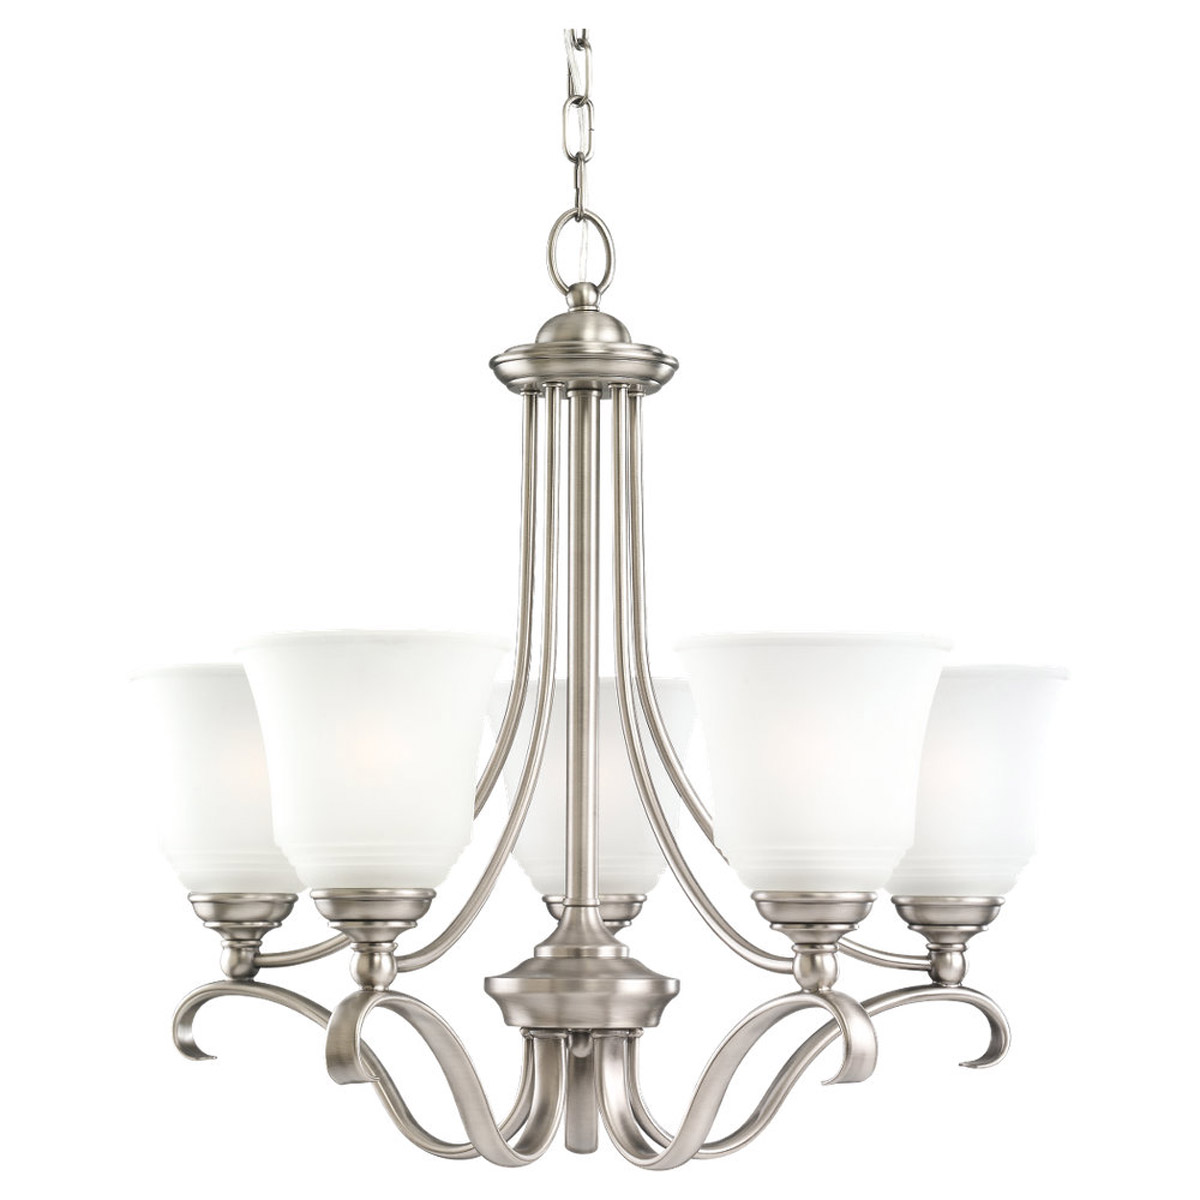 Sea Gull 39380BLE-965 Parkview 5 Light 24 inch Antique Brushed Nickel Chandelier Ceiling Light in Satin Etched Glass photo